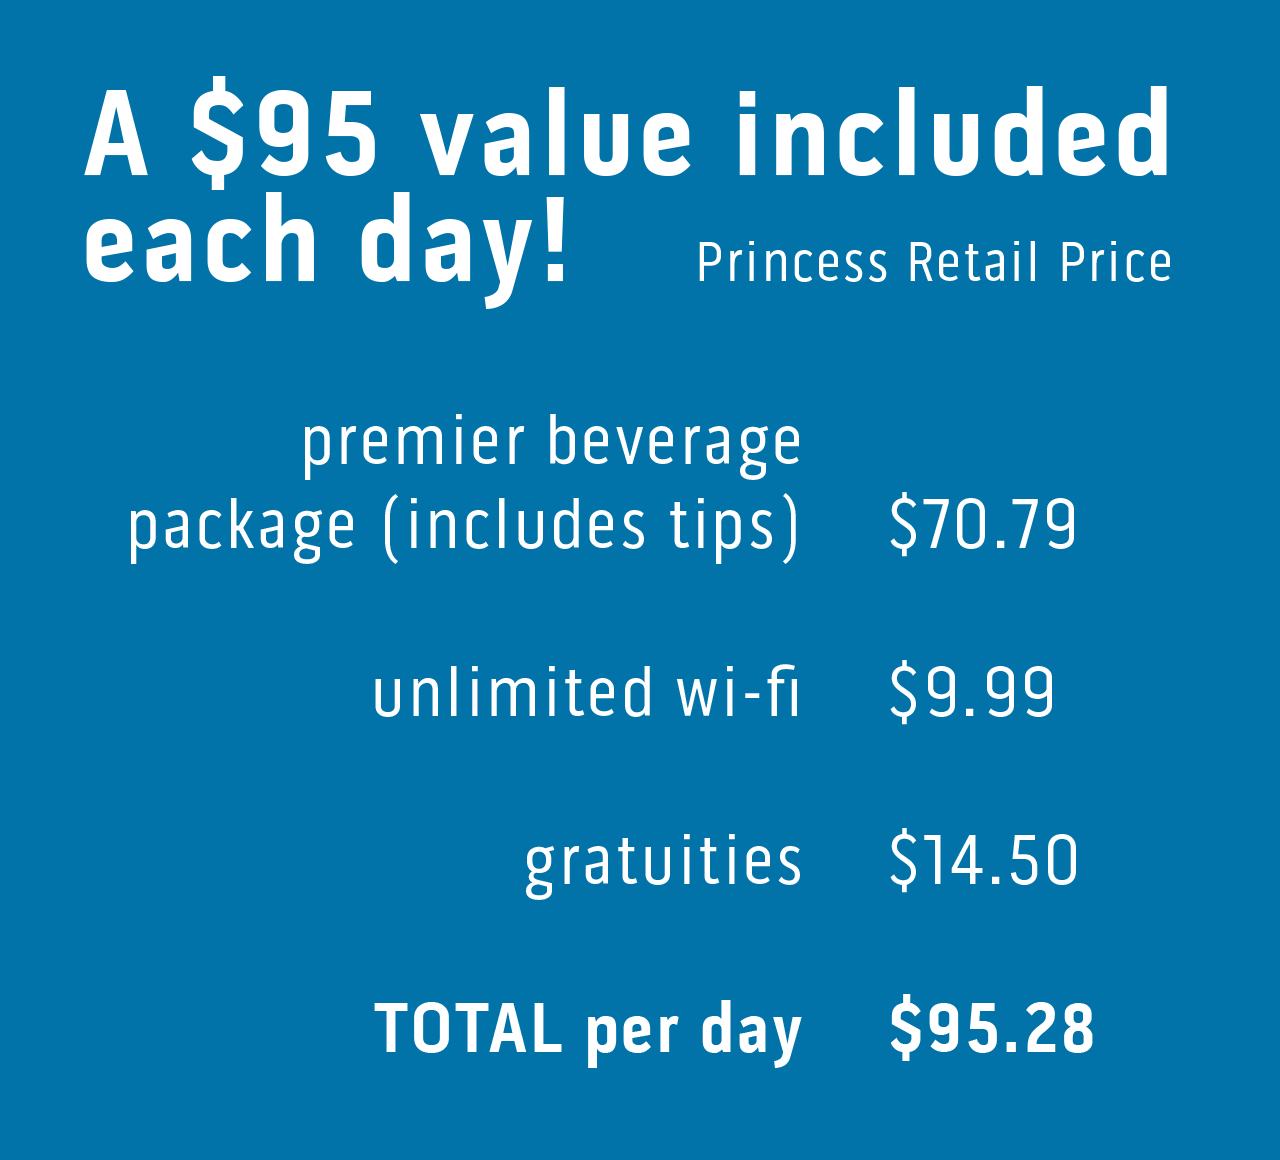 A $95 value included each day! Princess Retail Price. premier beverage package (includes tips) for $70.79. Unlimited wi-fi for $9.99. gratuities for $14.50. added together for a TOTAL per day of $95.28